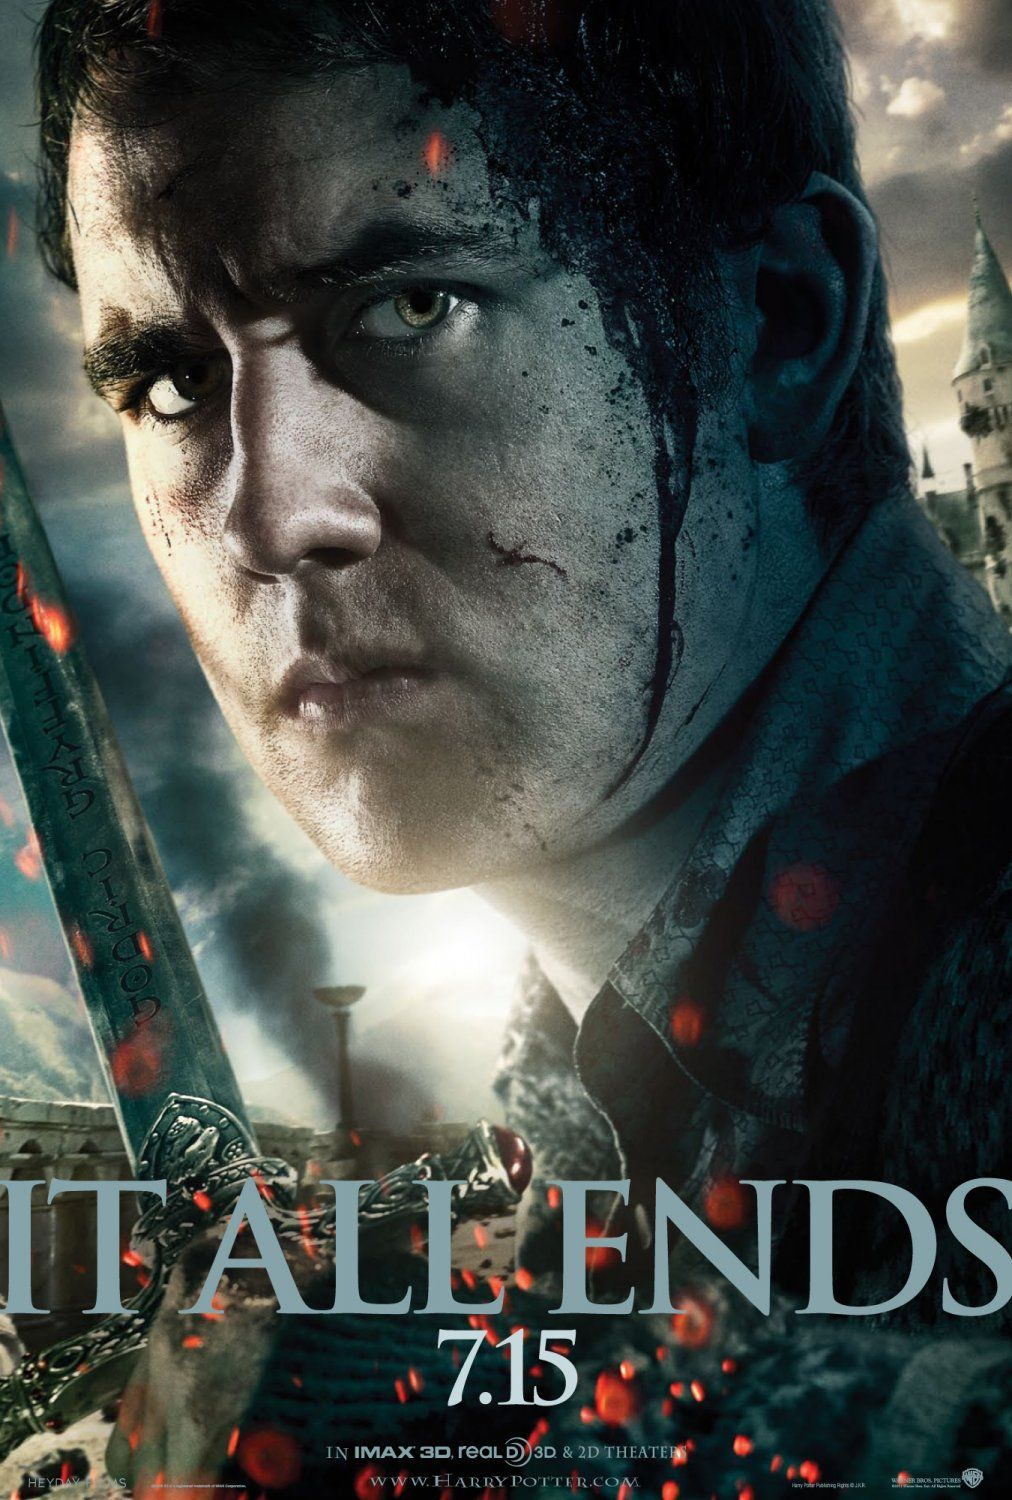 Harry Potter And The Deathly Hallows Part 2 It All Ends Here Neville Poster Design B Harry Potter Neville Harry Potter Movie Posters Harry Potter Poster